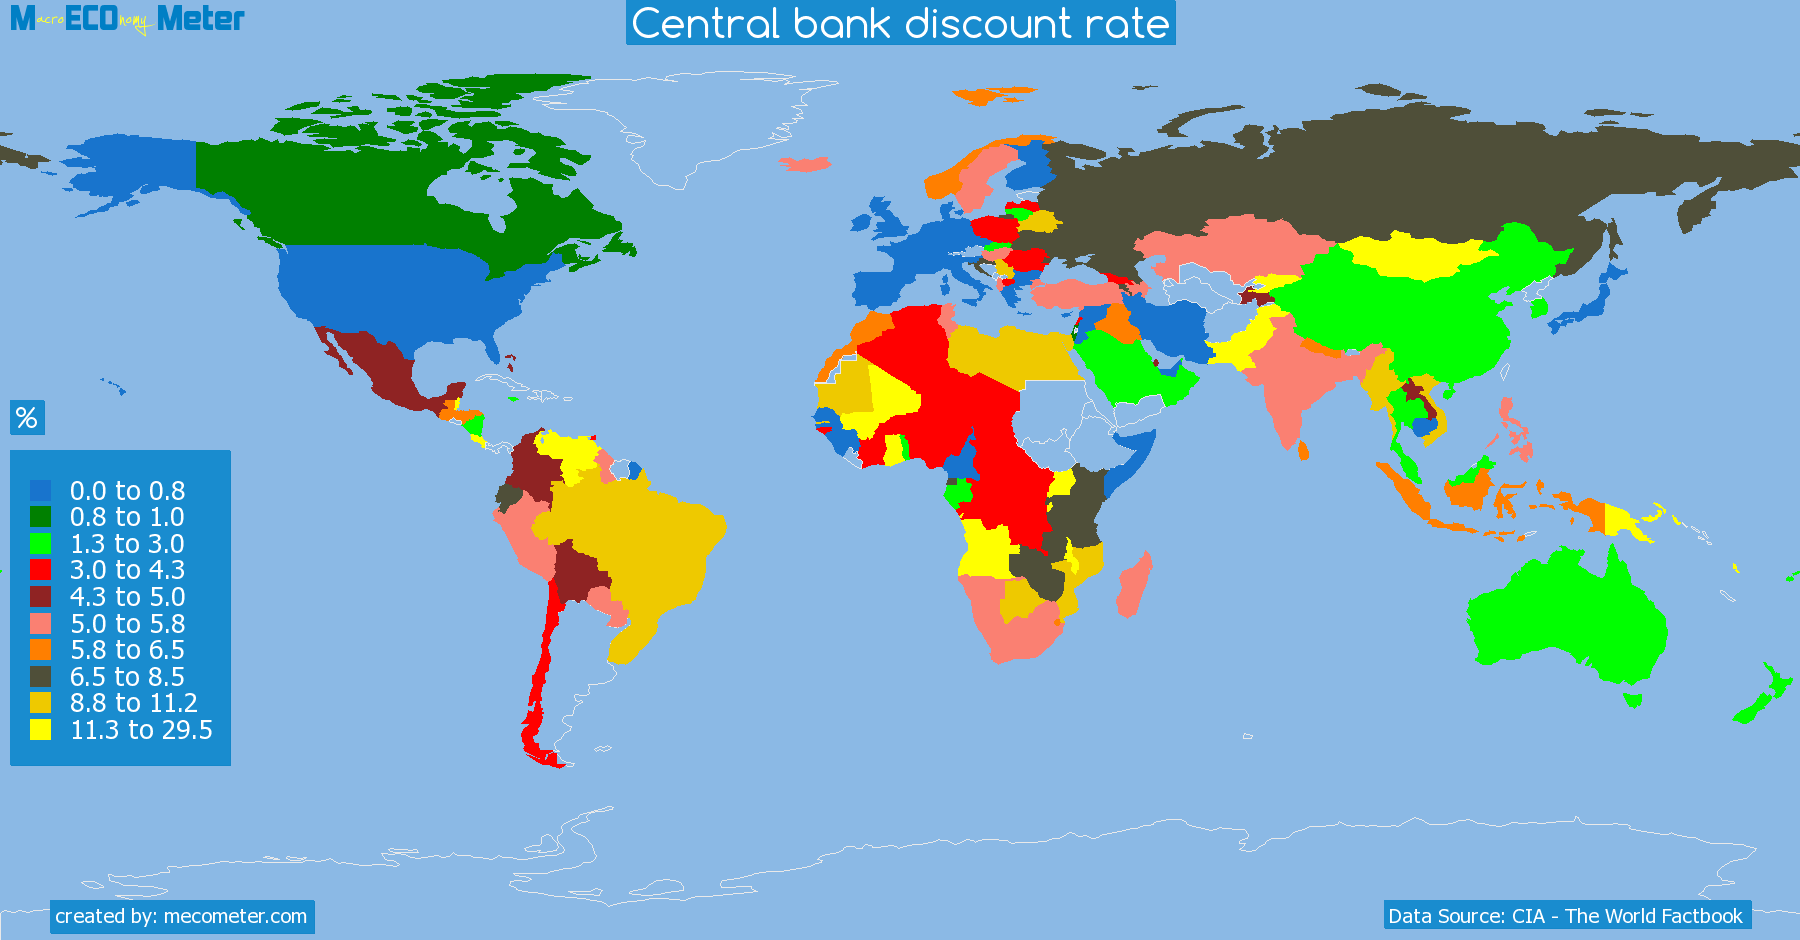 list of countries by Central bank discount rate